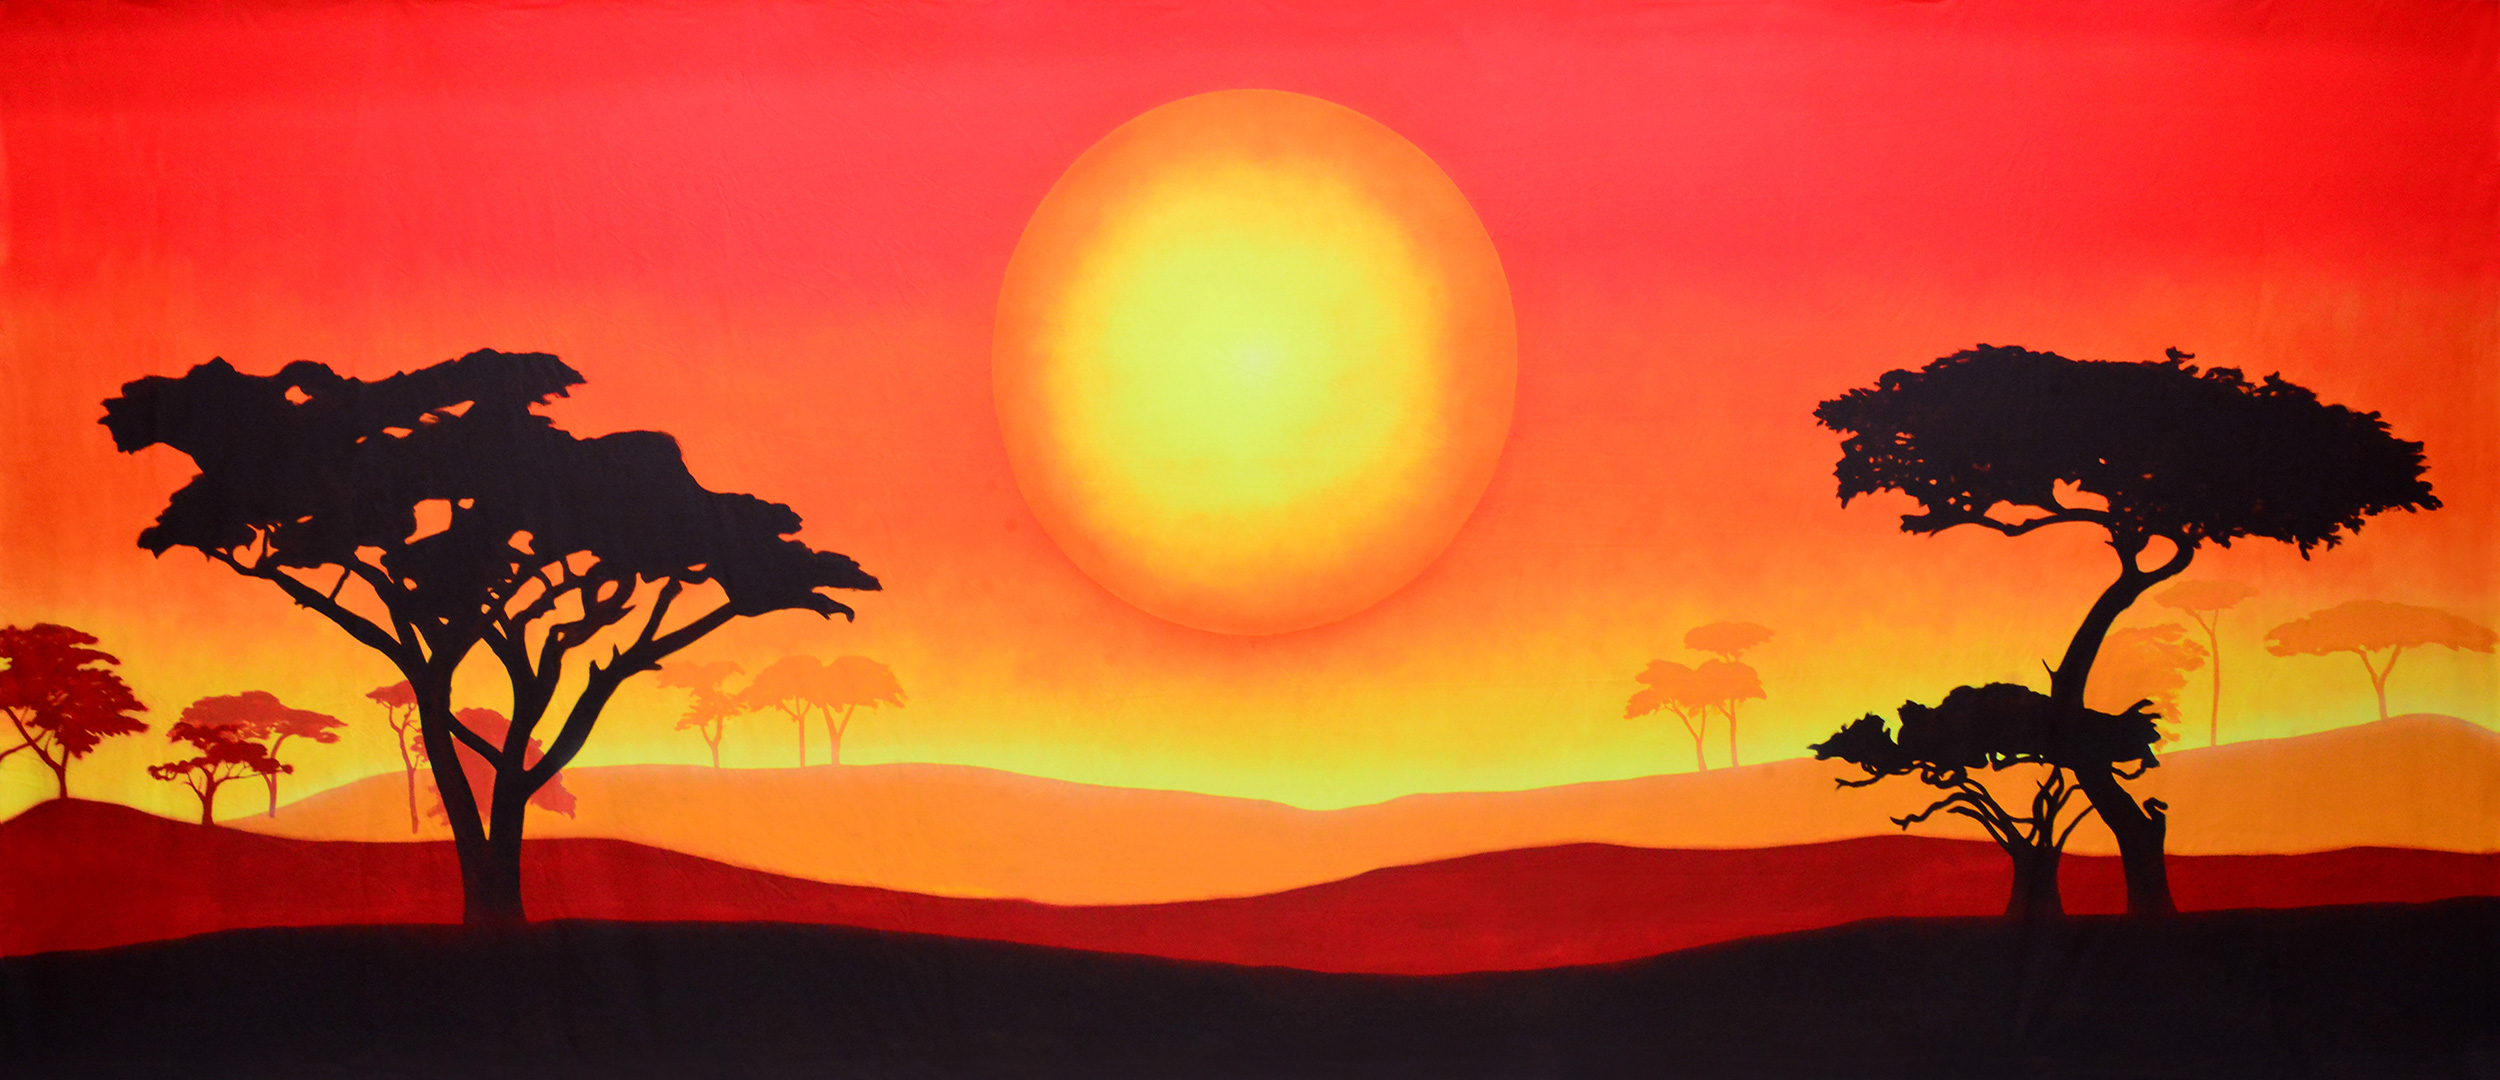 African Sun Landscape Projected Backdrop for Landscapes, Lion King